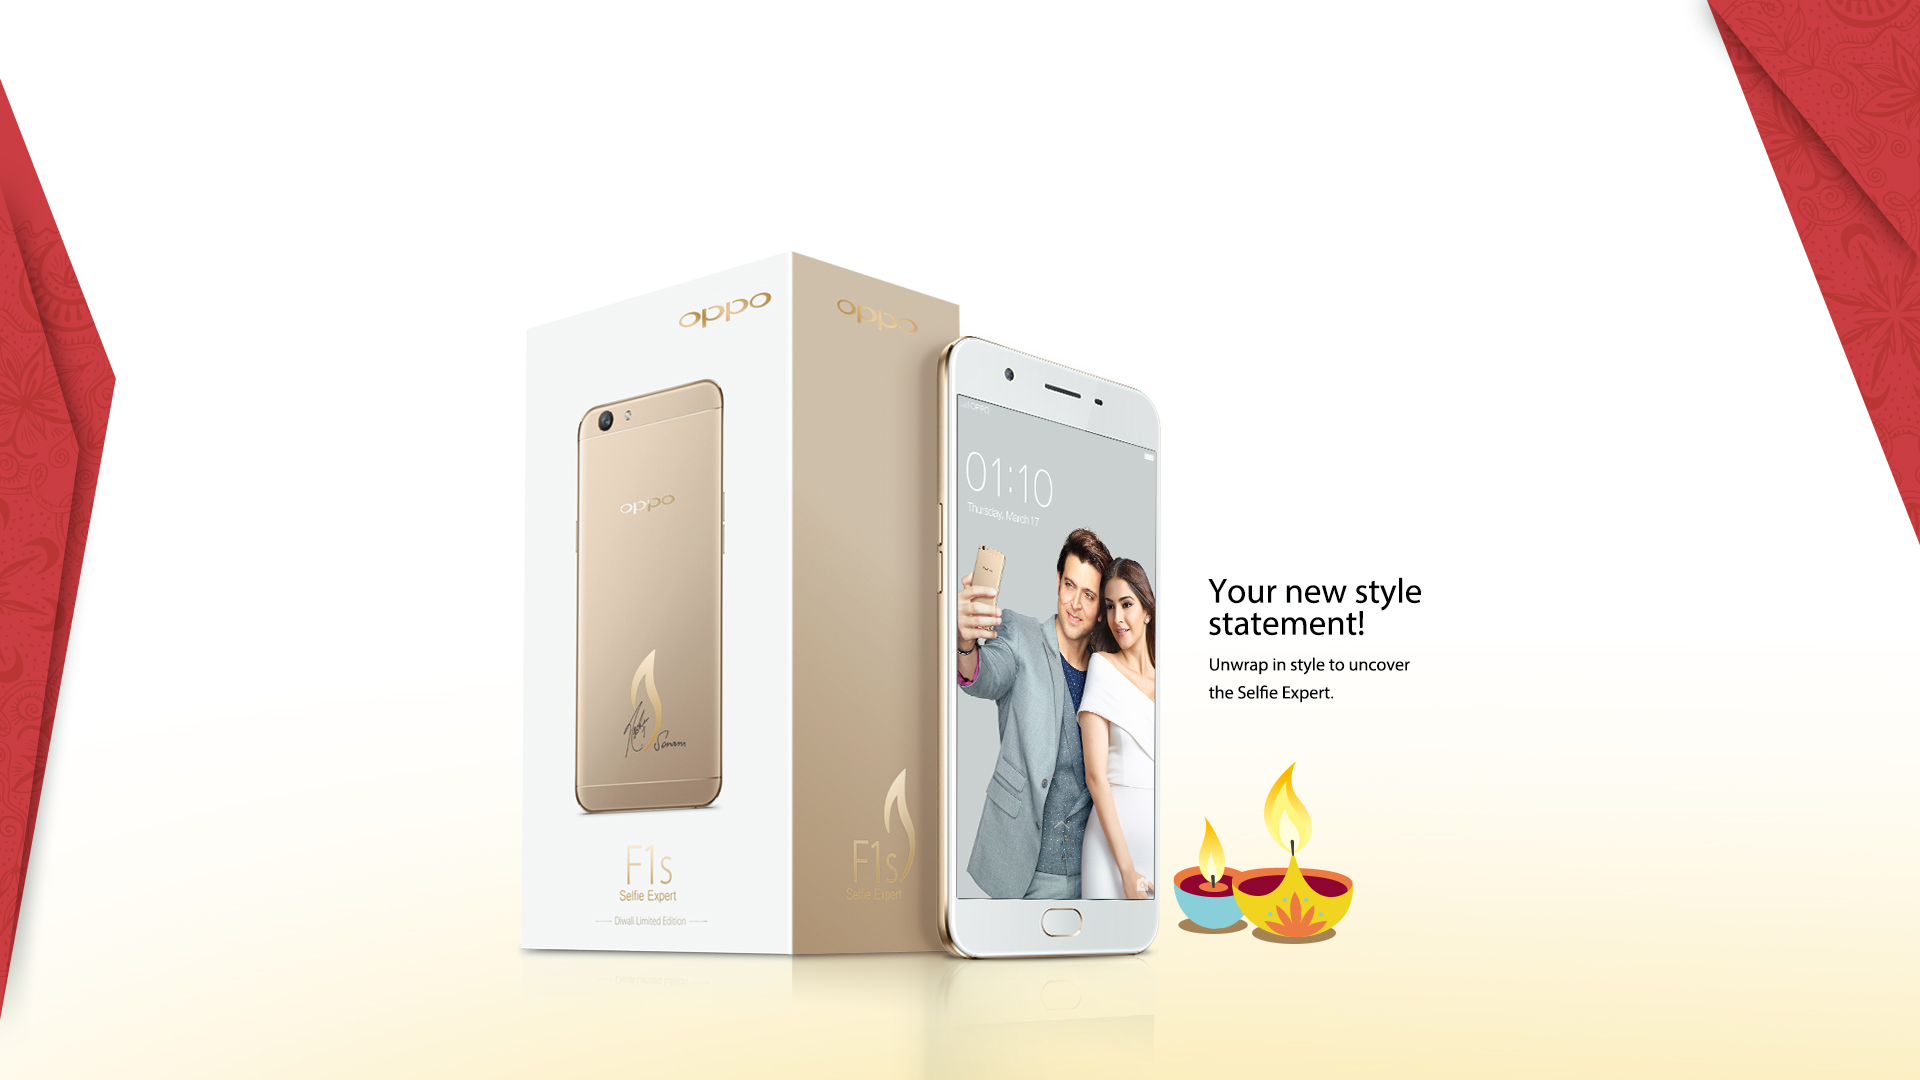 Oppo F1s Diwali Limited Edition Smartphone Signed By Sonam Kapoor New